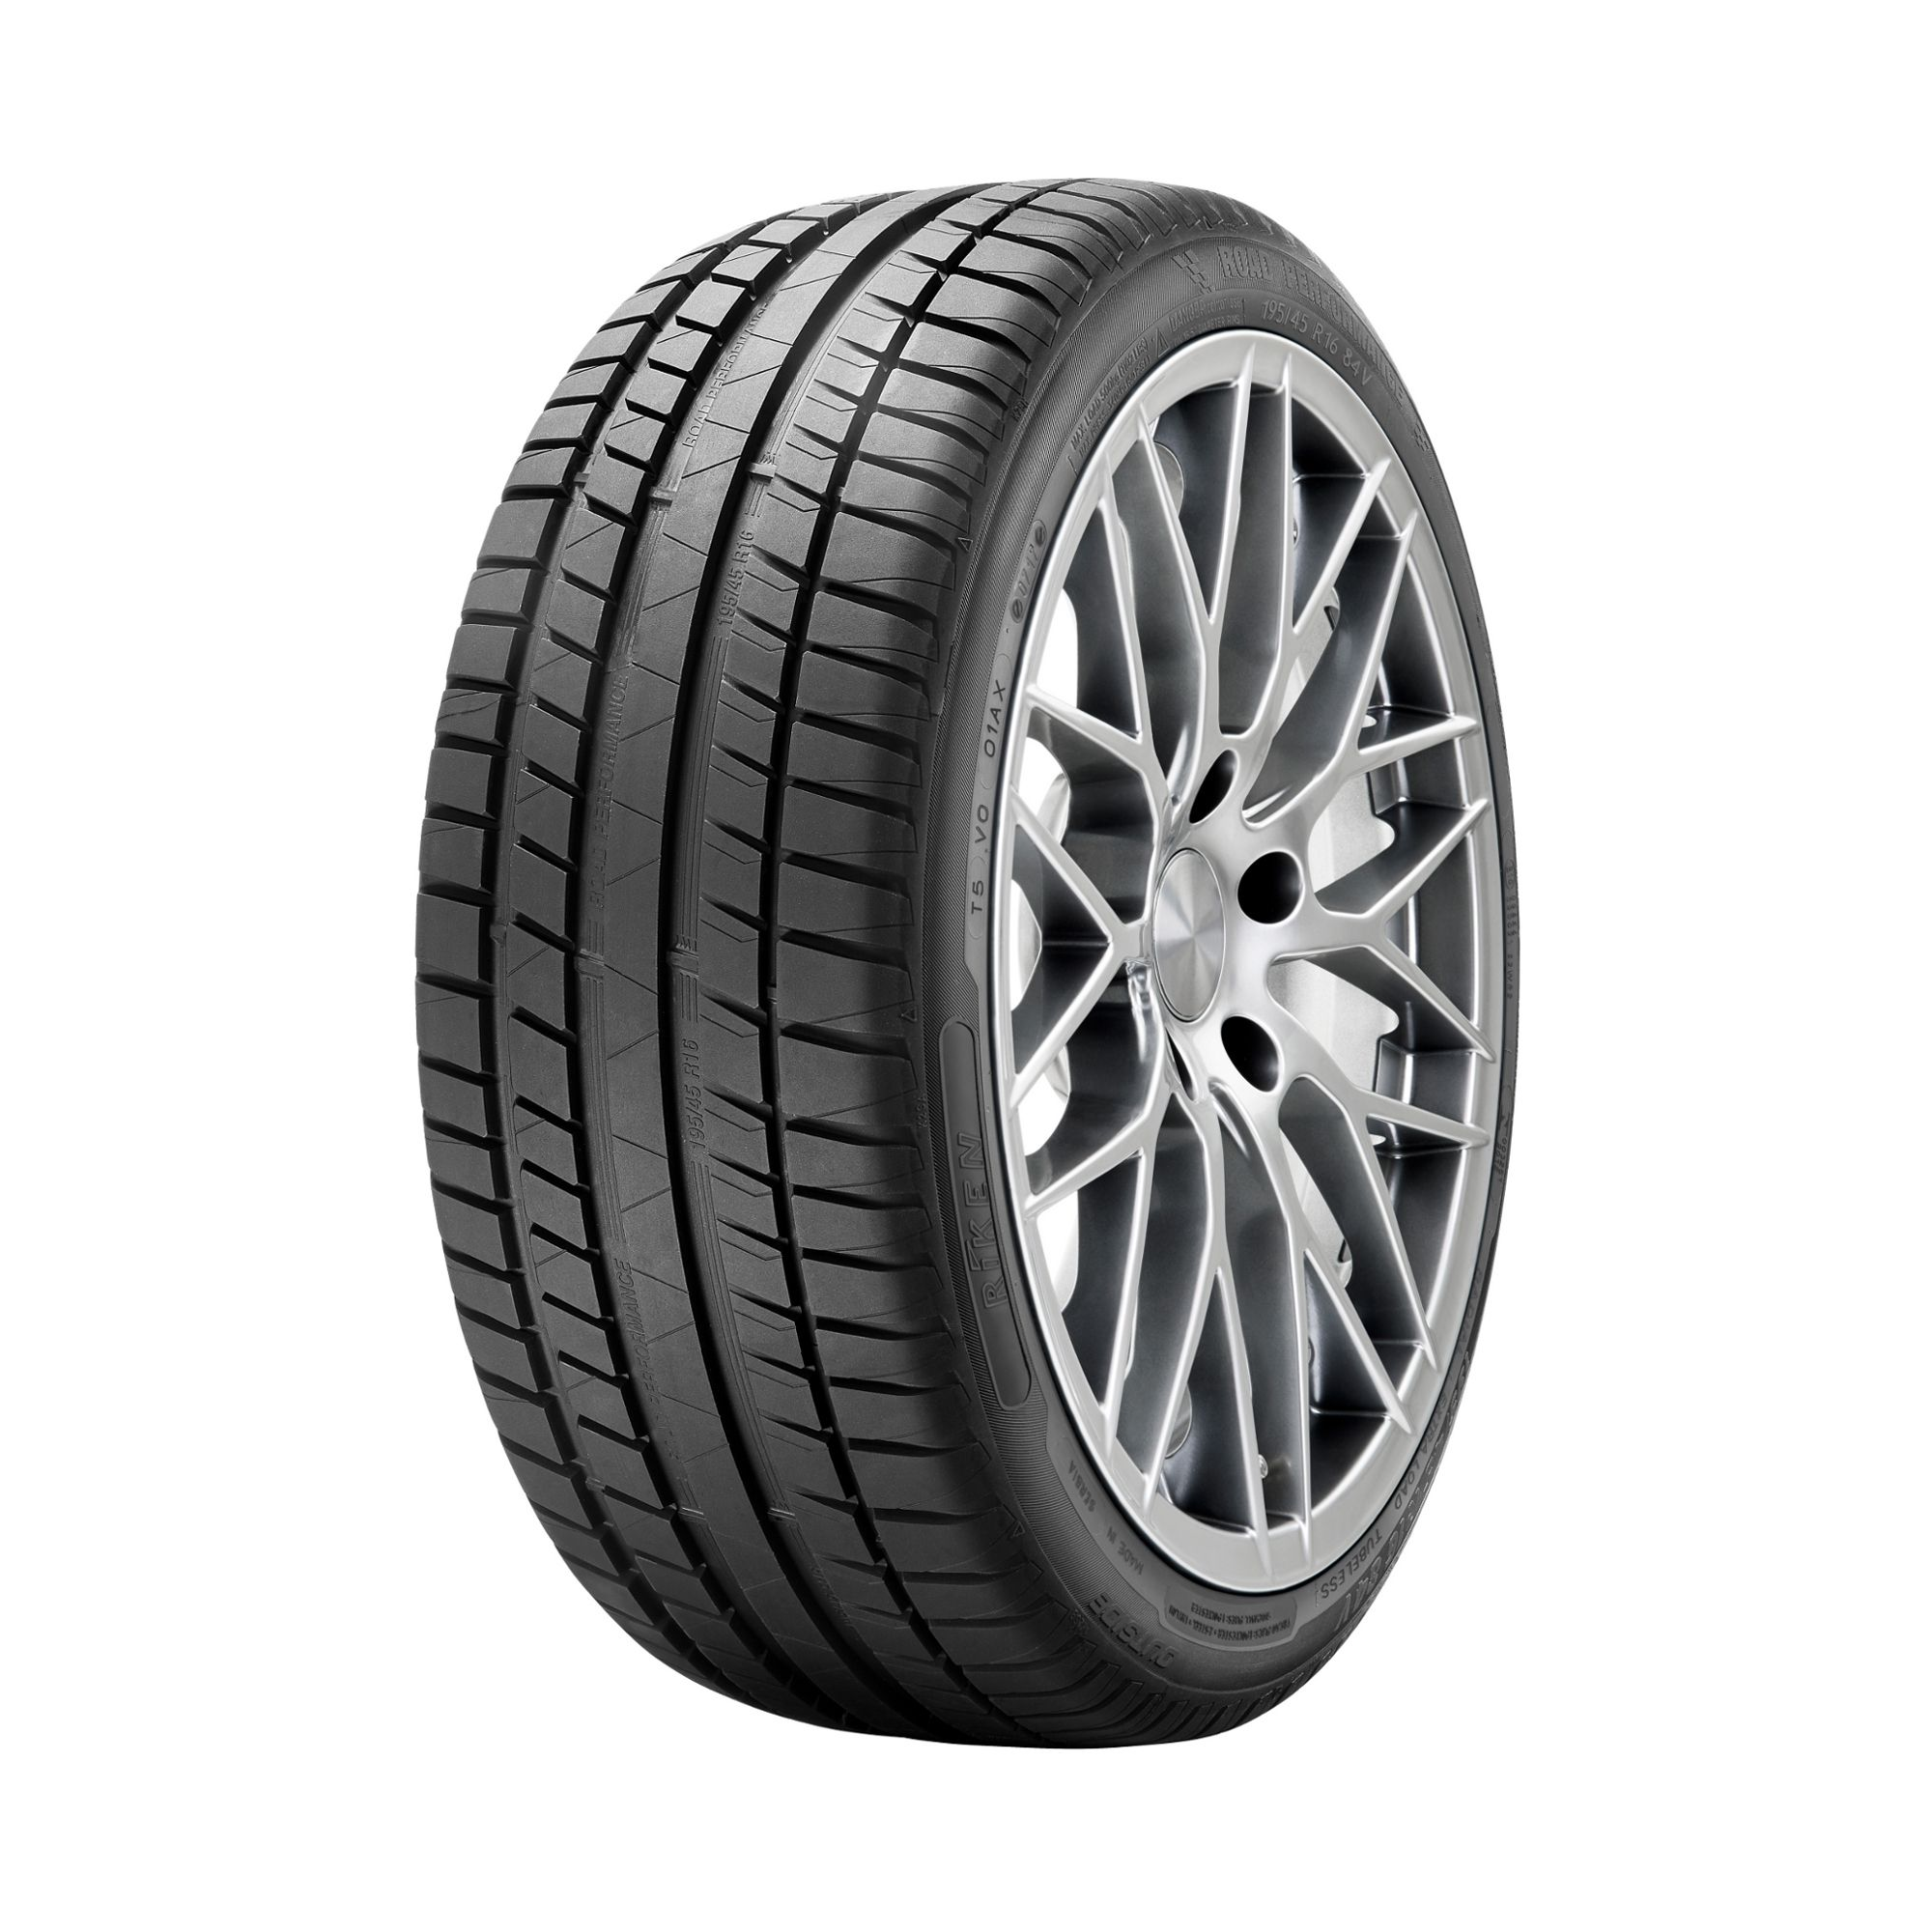 Anvelopa vara RIKEN Road Performance(by Michelin) 215/55 R16 93V